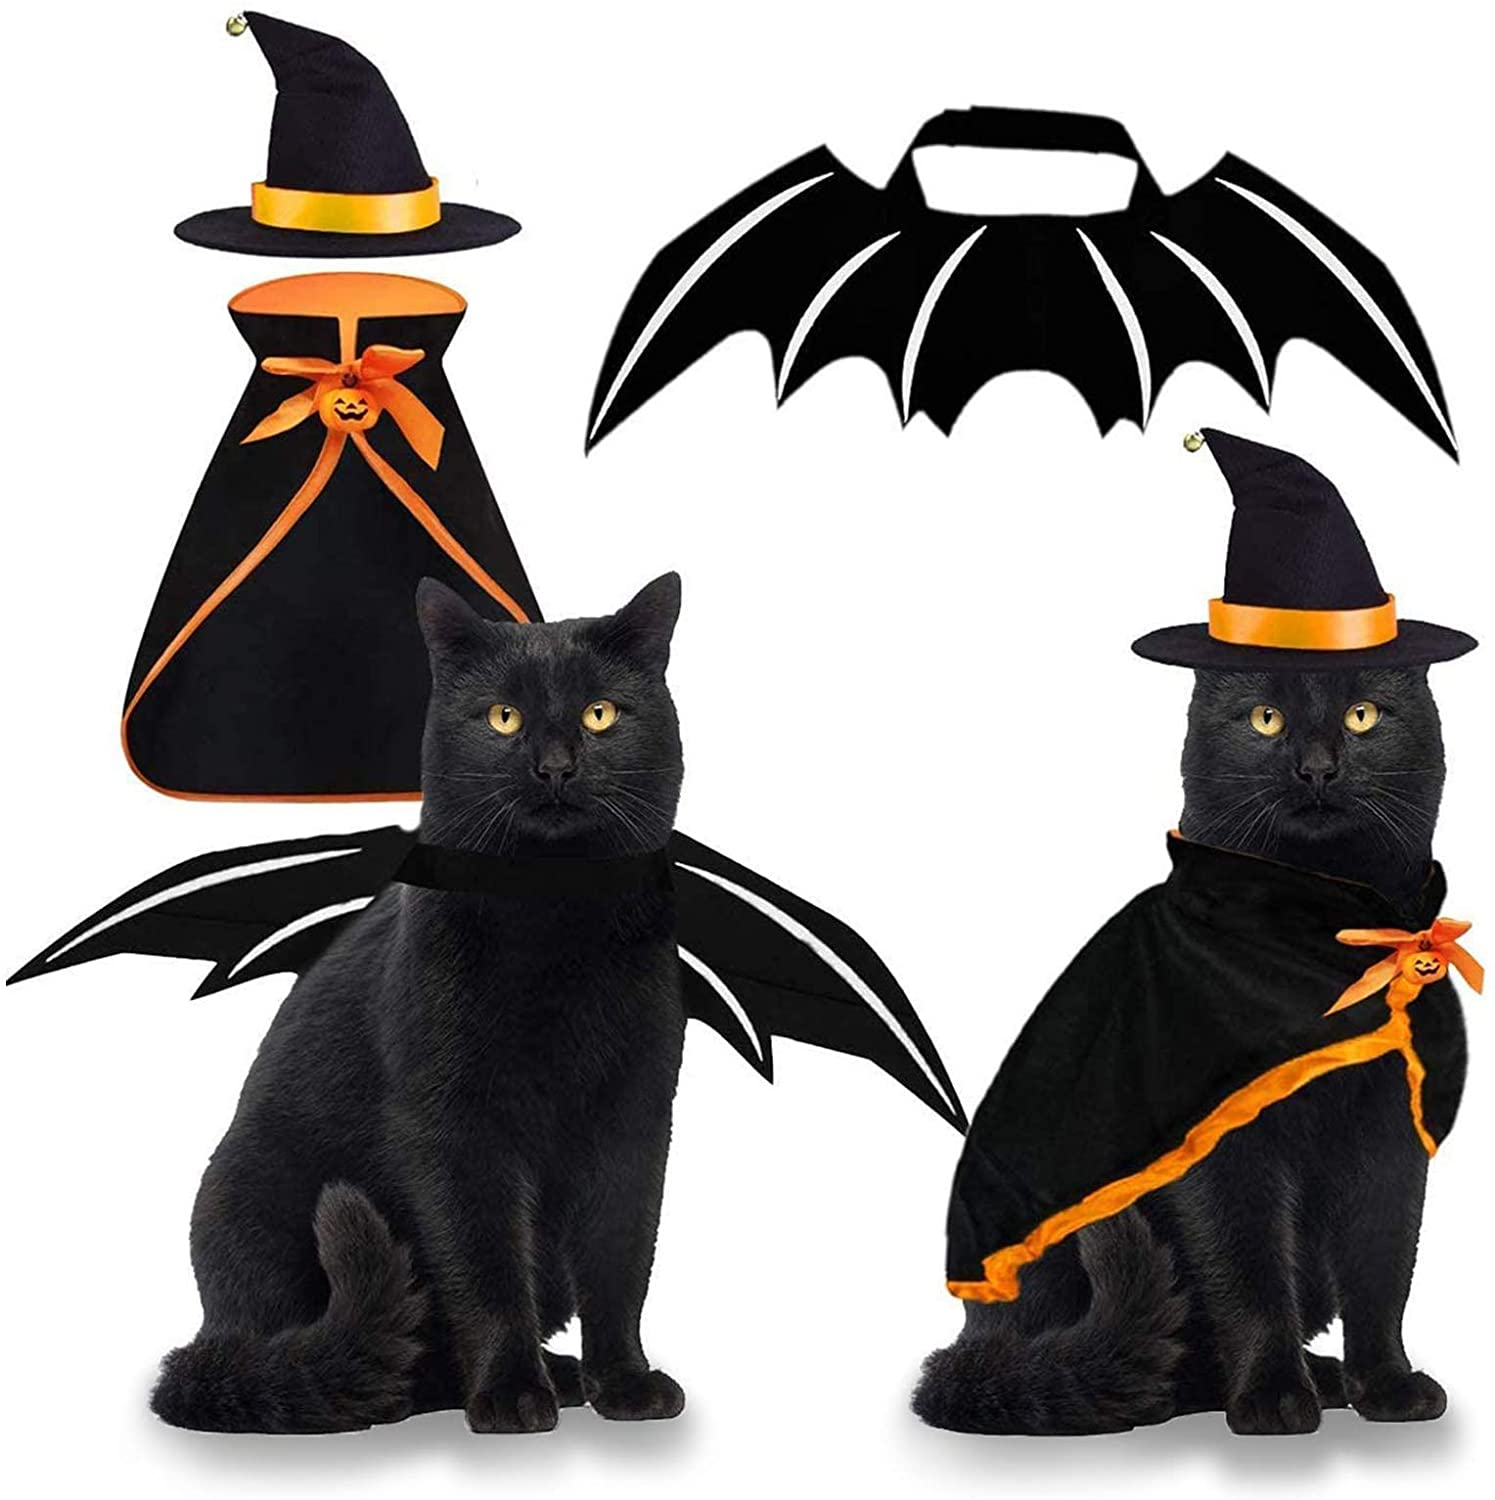 Byhoo Pet Costume Cat Cosplay Witch Cloak Bat Wings Wizard Hat 3 PCS Pet Clothes for Small Cats Kitten Funny Magical Holiday Decorations for Halloween Theme Party Pumpkin Easter Gift